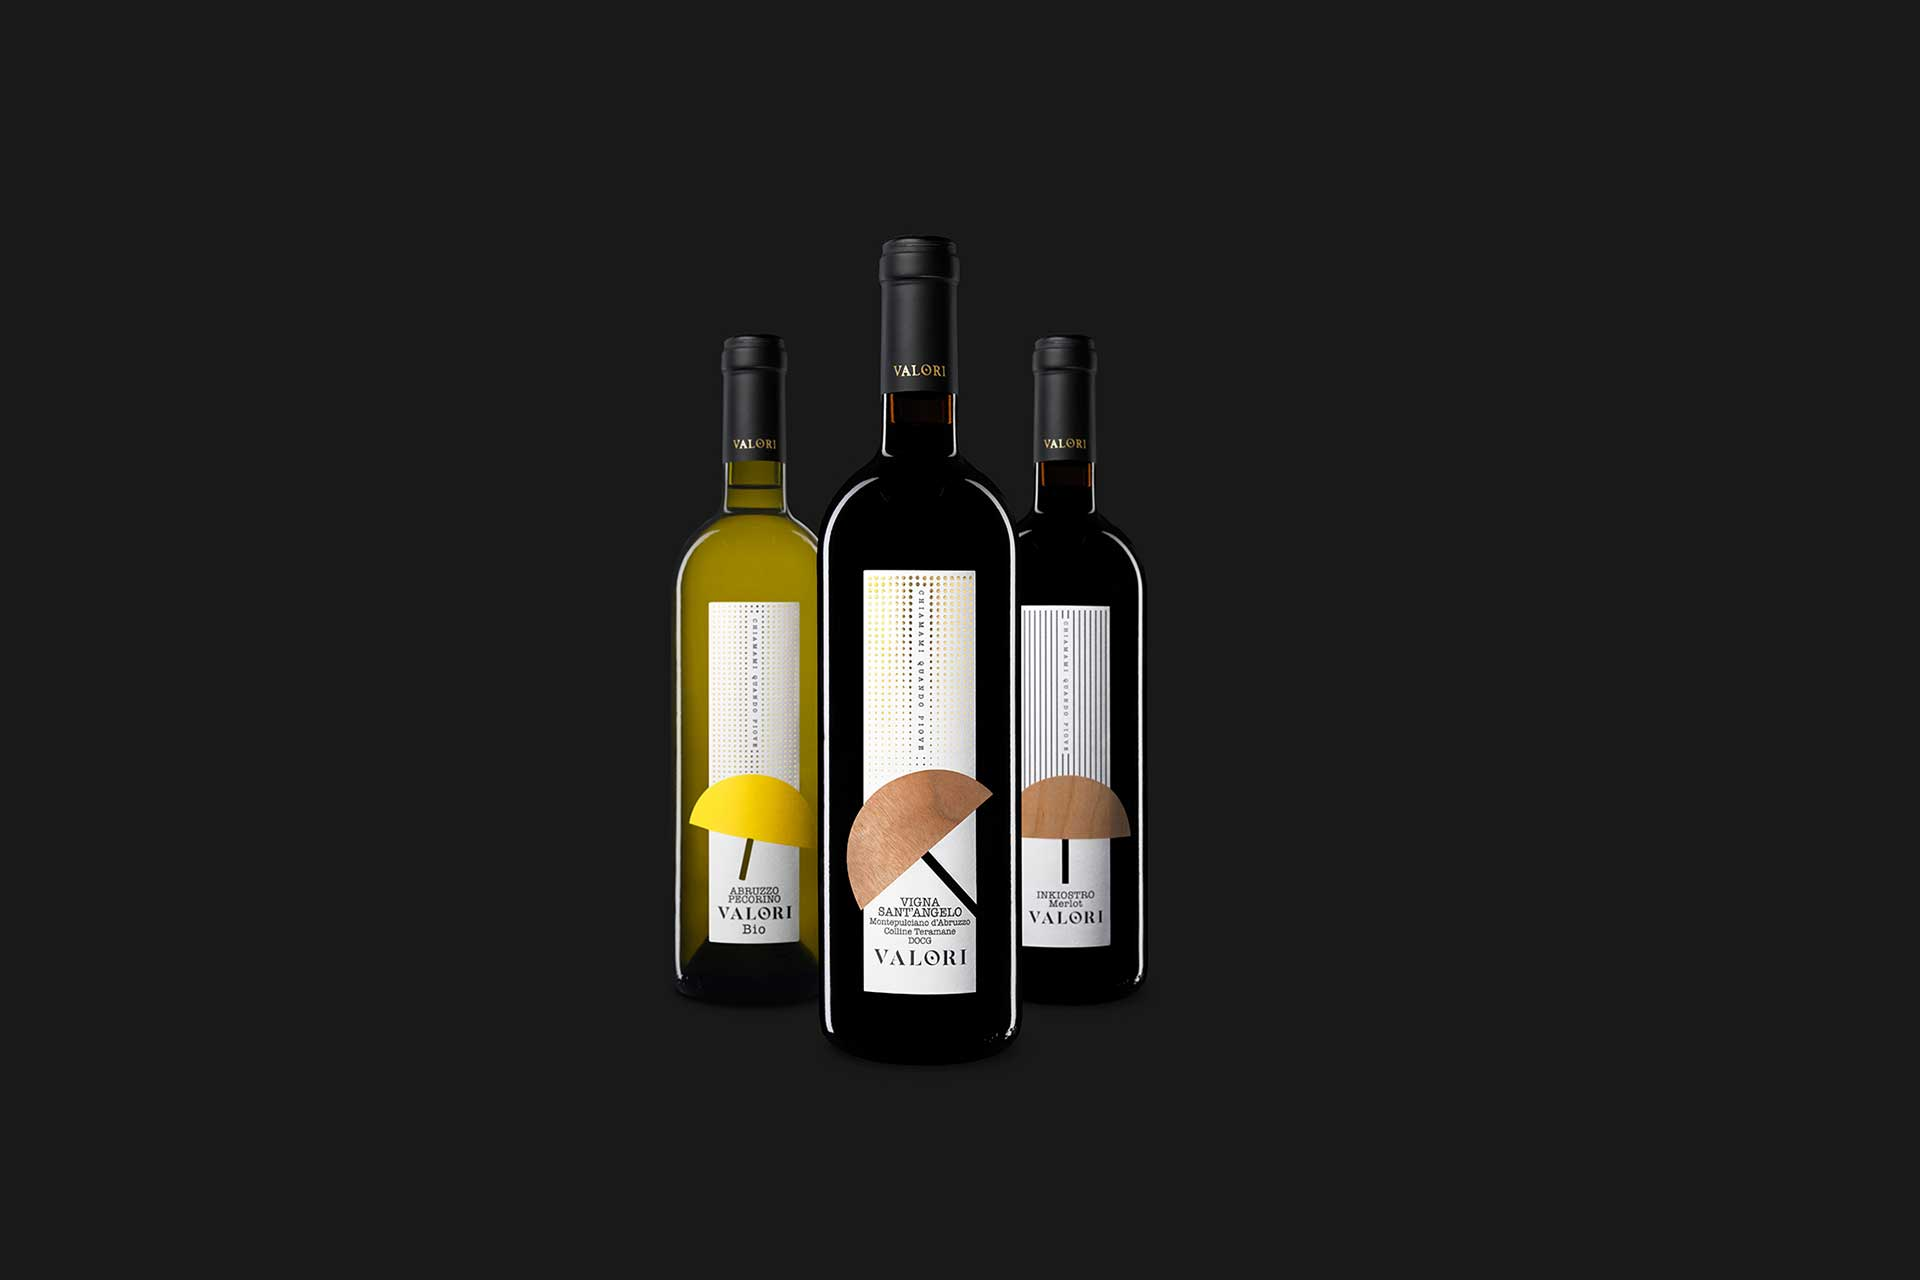 spazio-di-paolo-mario-packaging-luigi-valori-wine-label-design-11